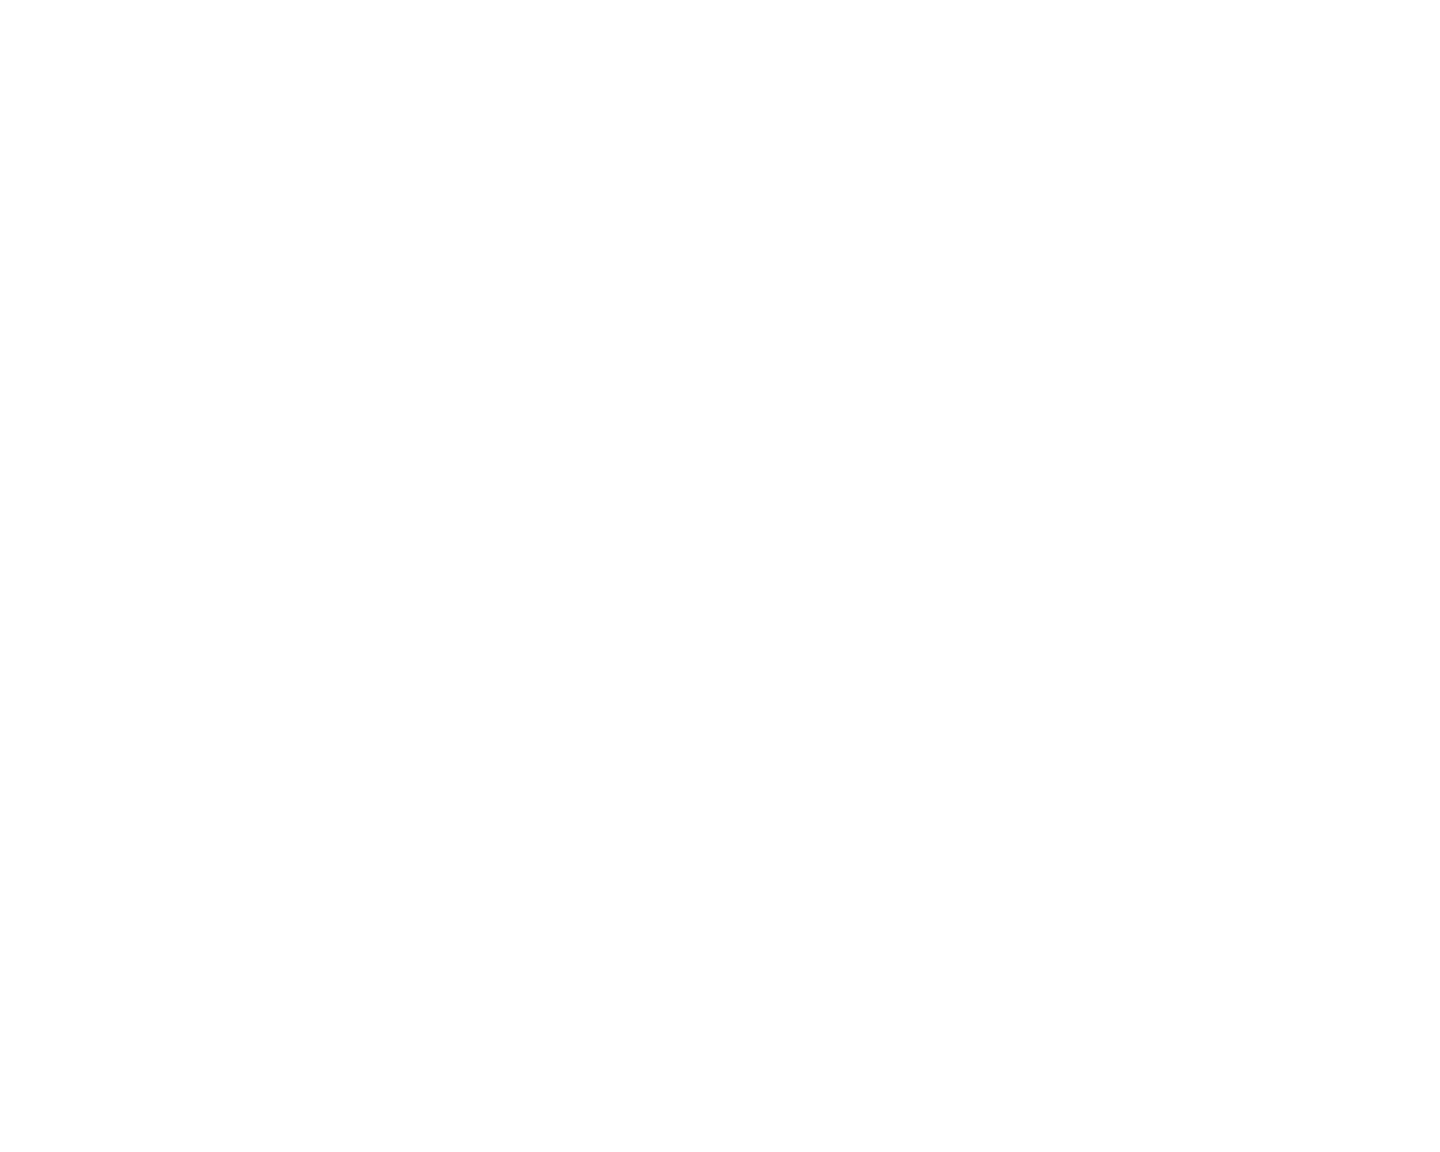 Kyrie Coaching by Ruthie Andrews